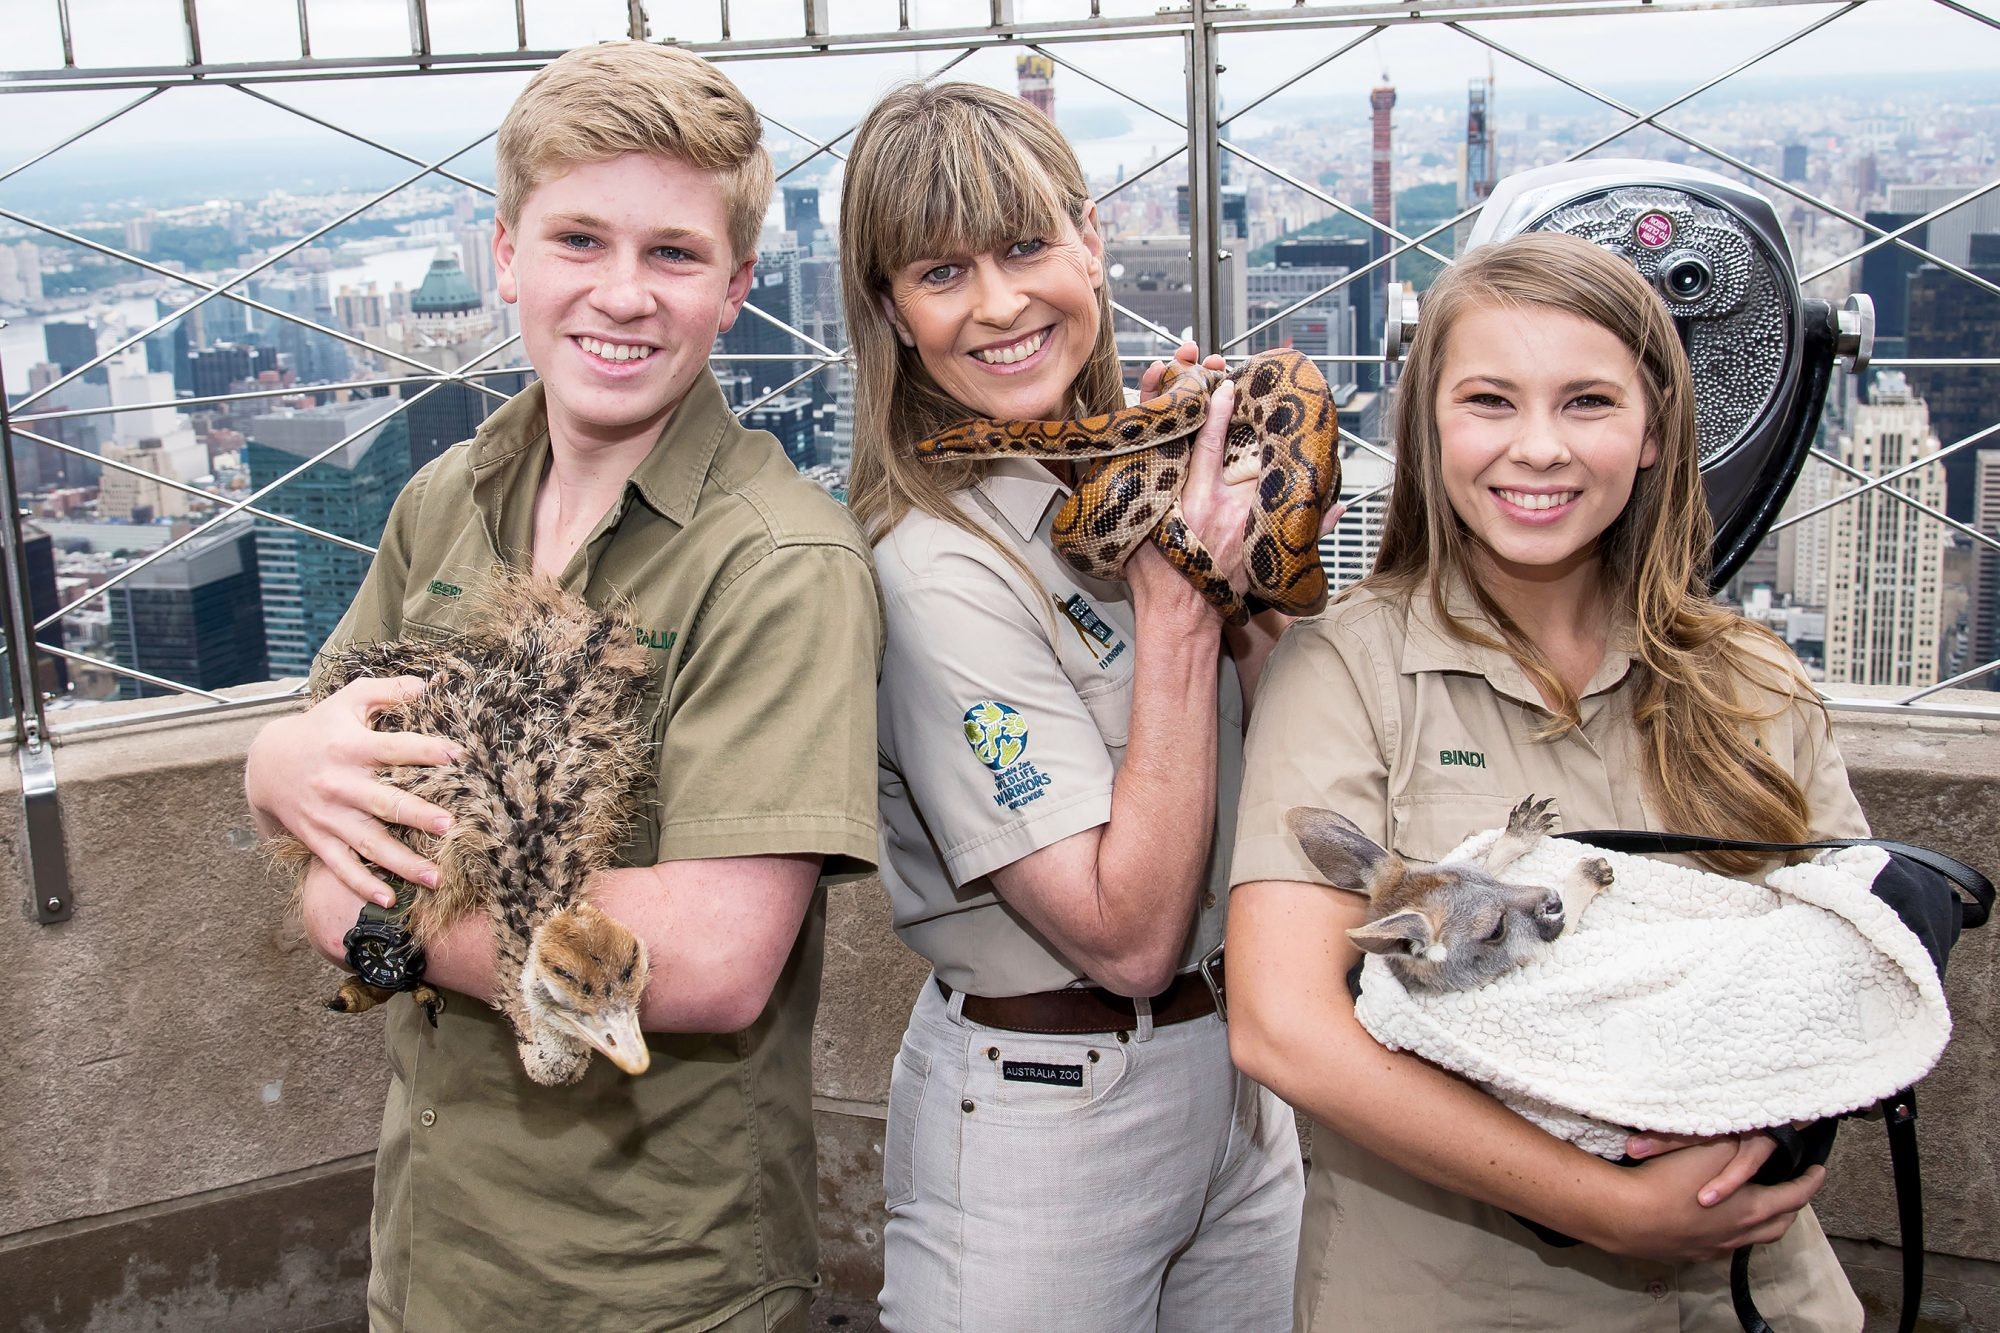 Terri, Bindi and Robert Irwin Visit the Empire State Building, New York, USA - 20 Sep 2018